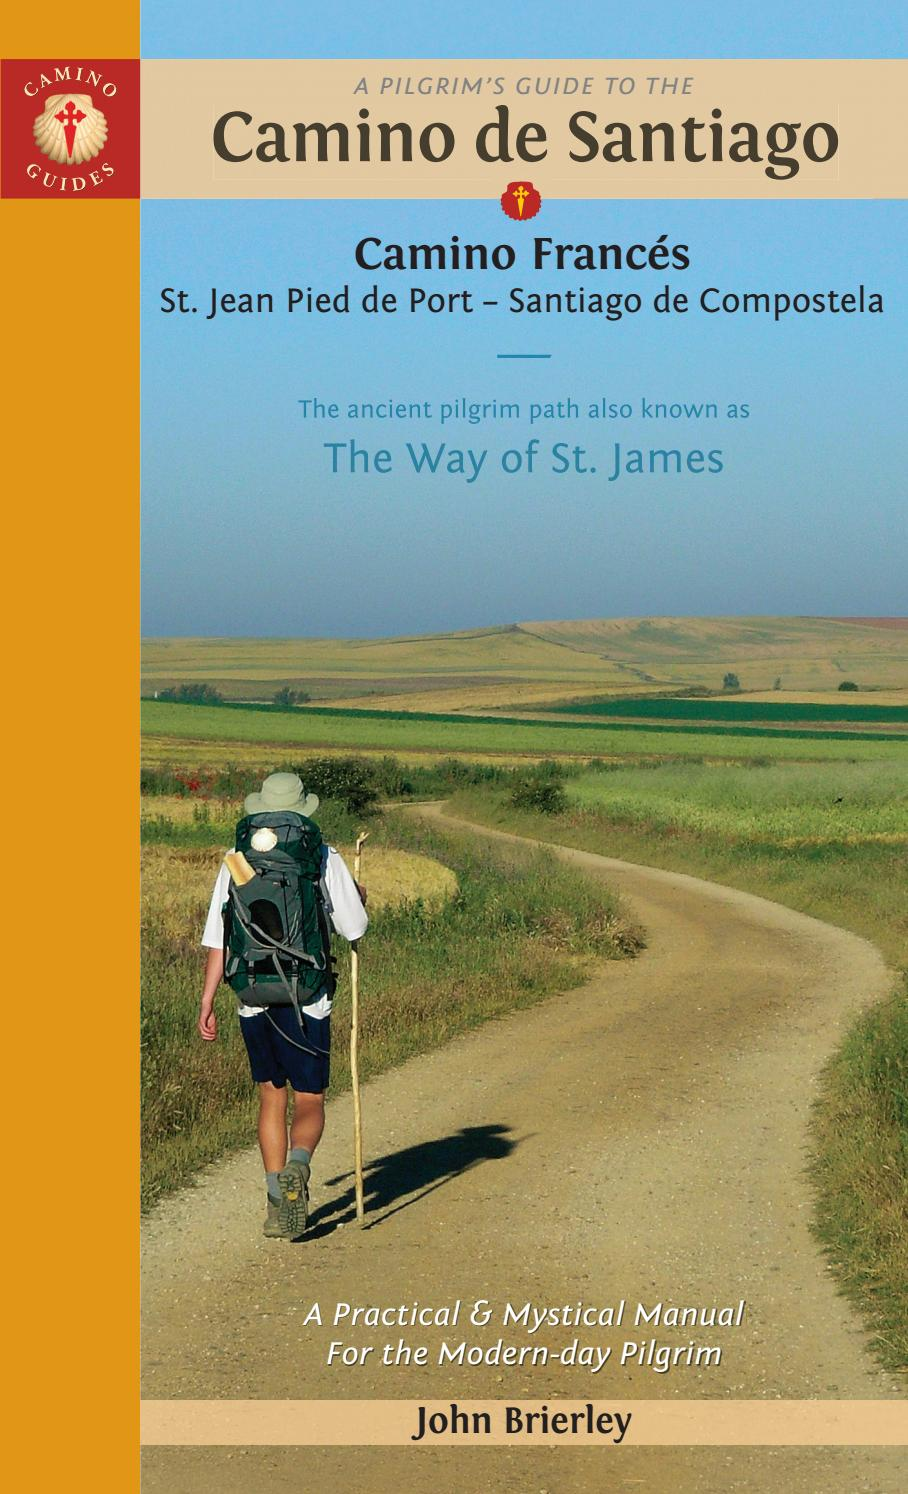 A Pilgrims Guide To The Camino De Santiago 2019 Edition